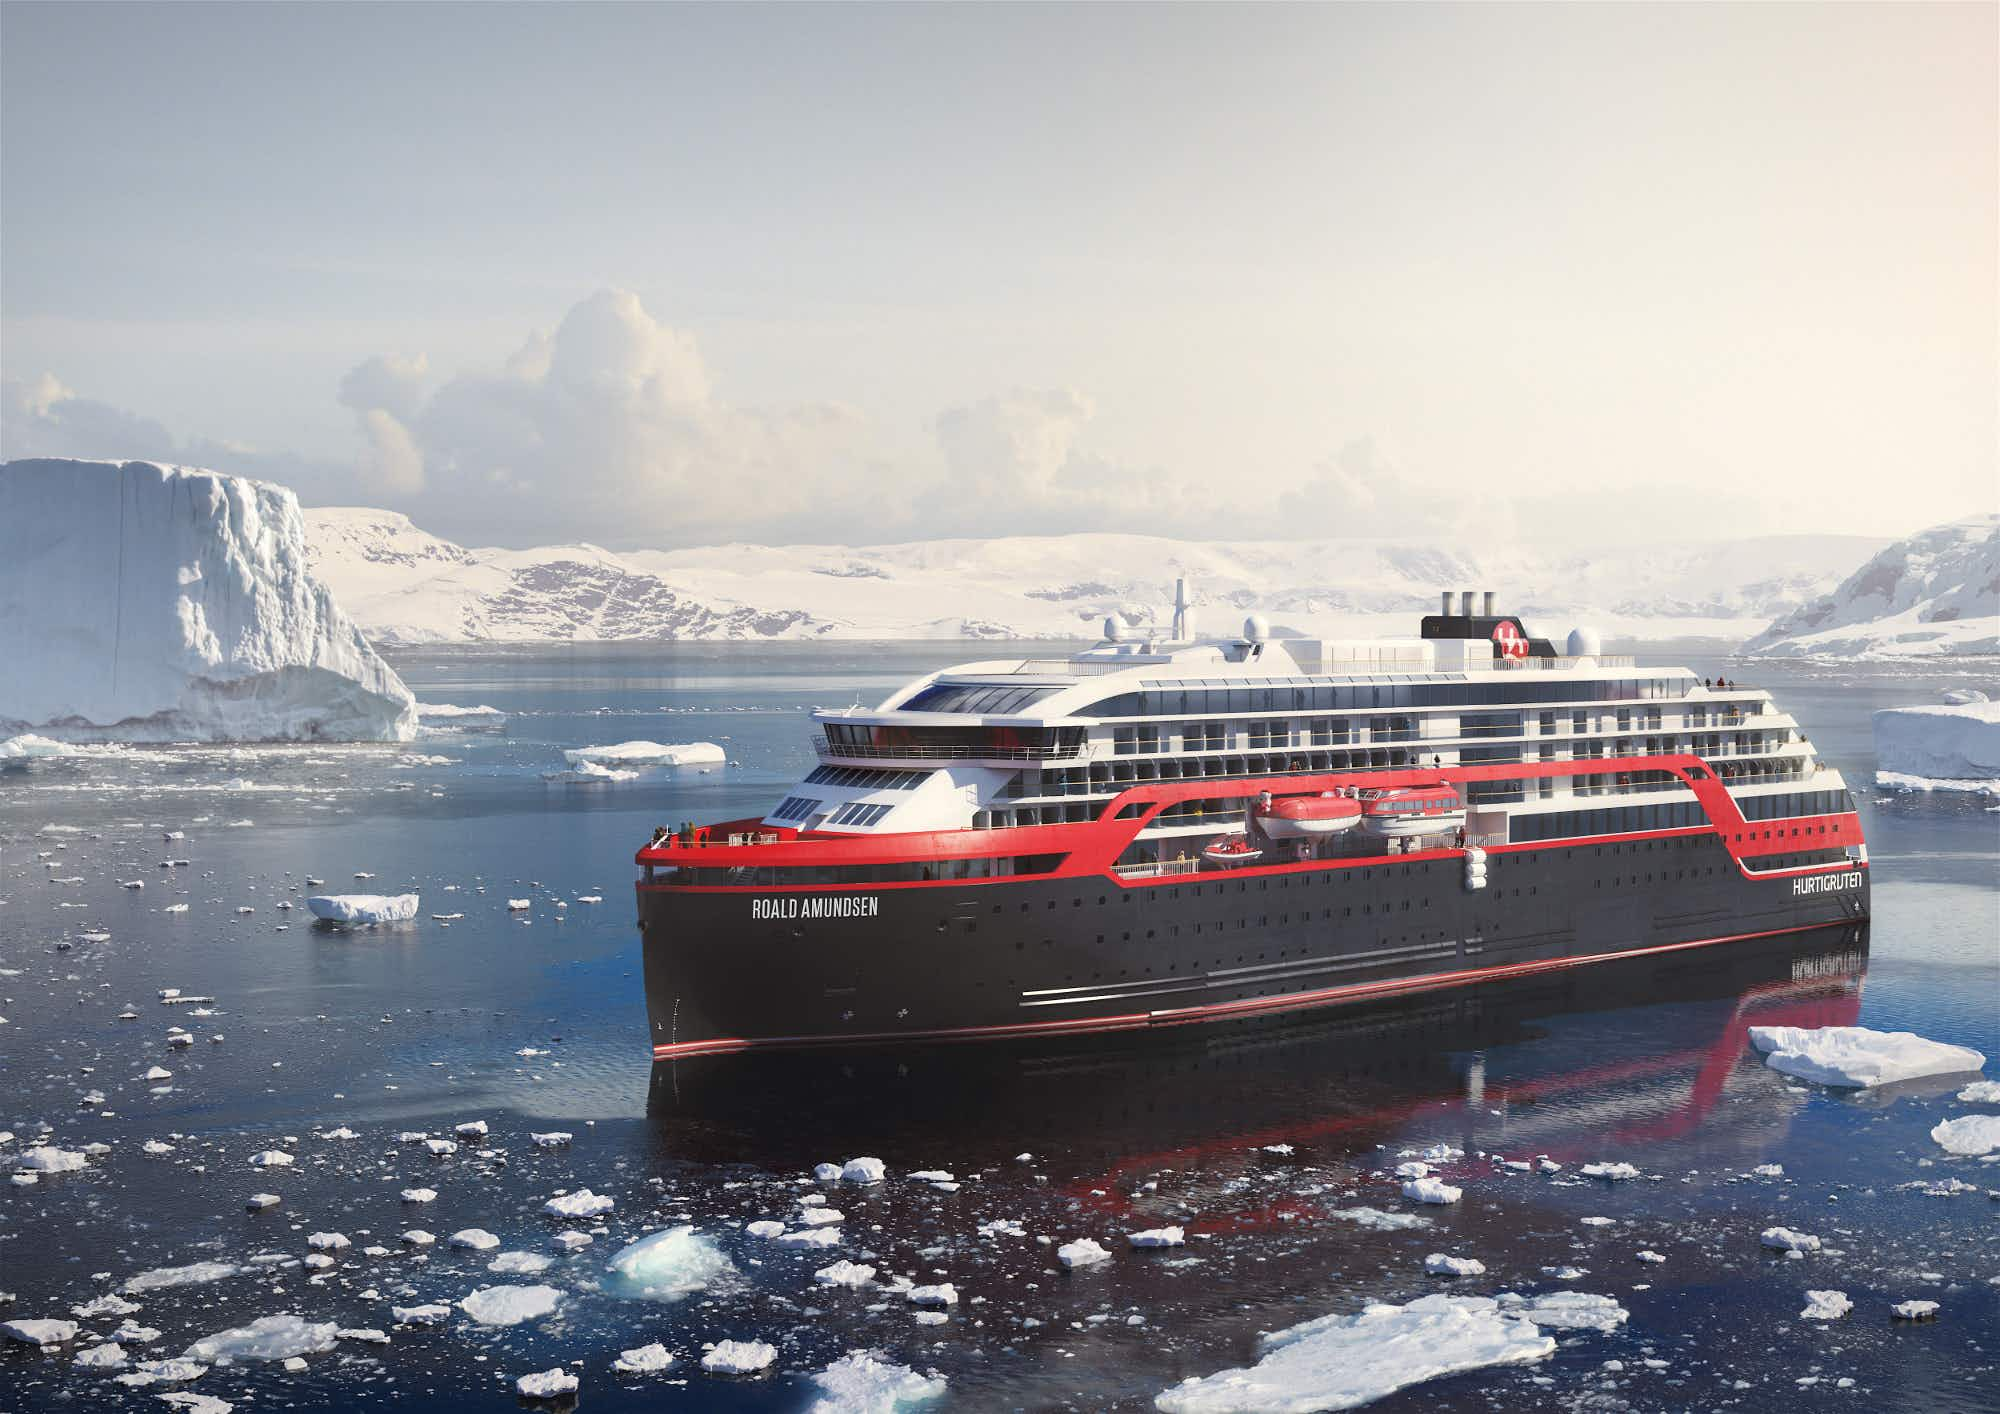 The world's greenest cruise ship will set sail this year